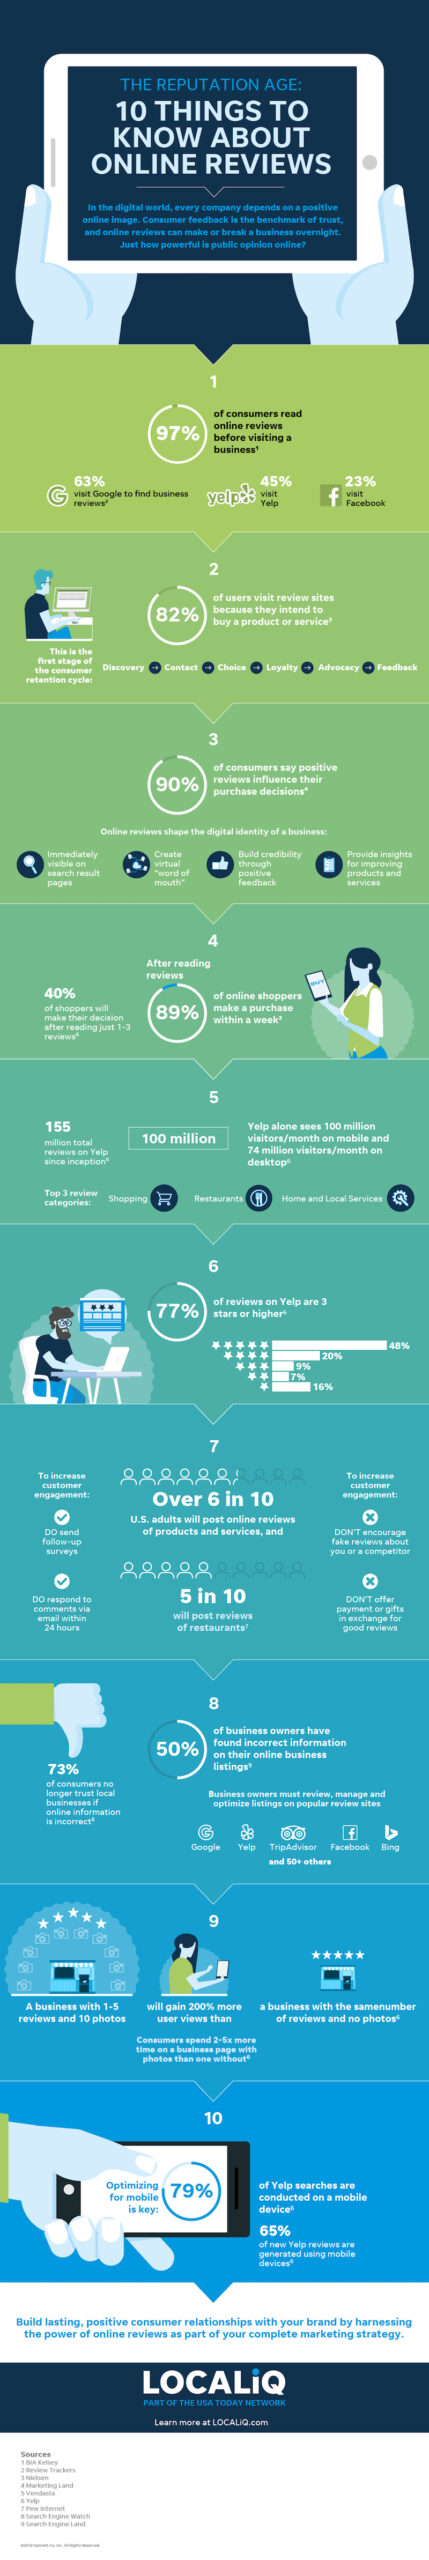 LOCALiQ Infographic: Online Reputation Stats